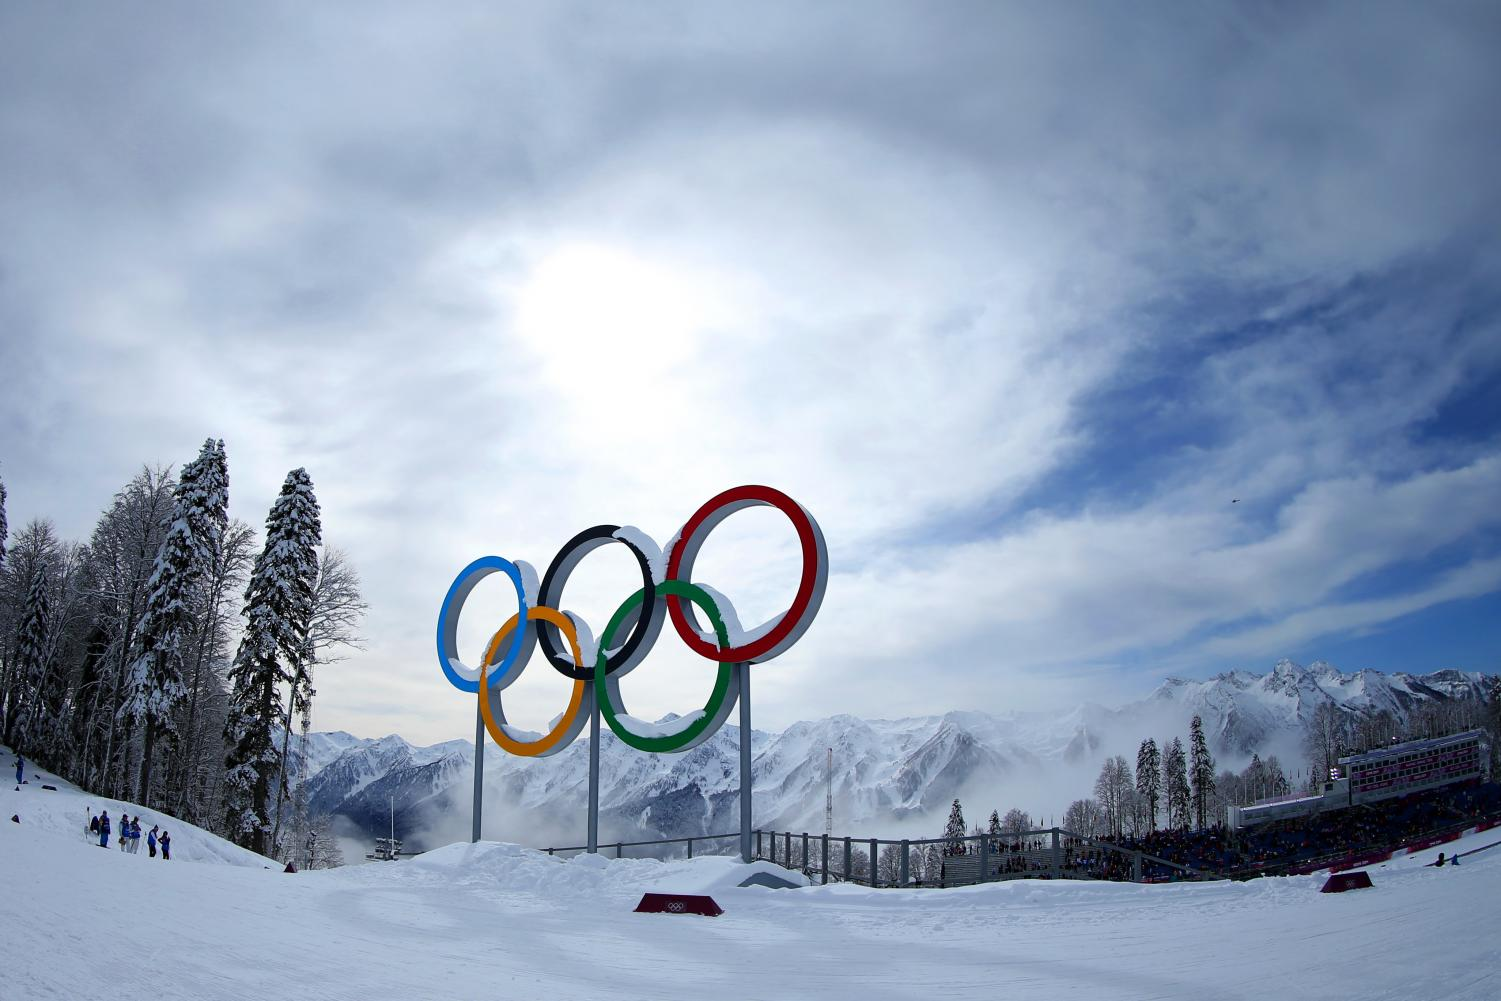 The upcoming 2018 Winter Olympic games have been plagued by political and ideological confrontations.